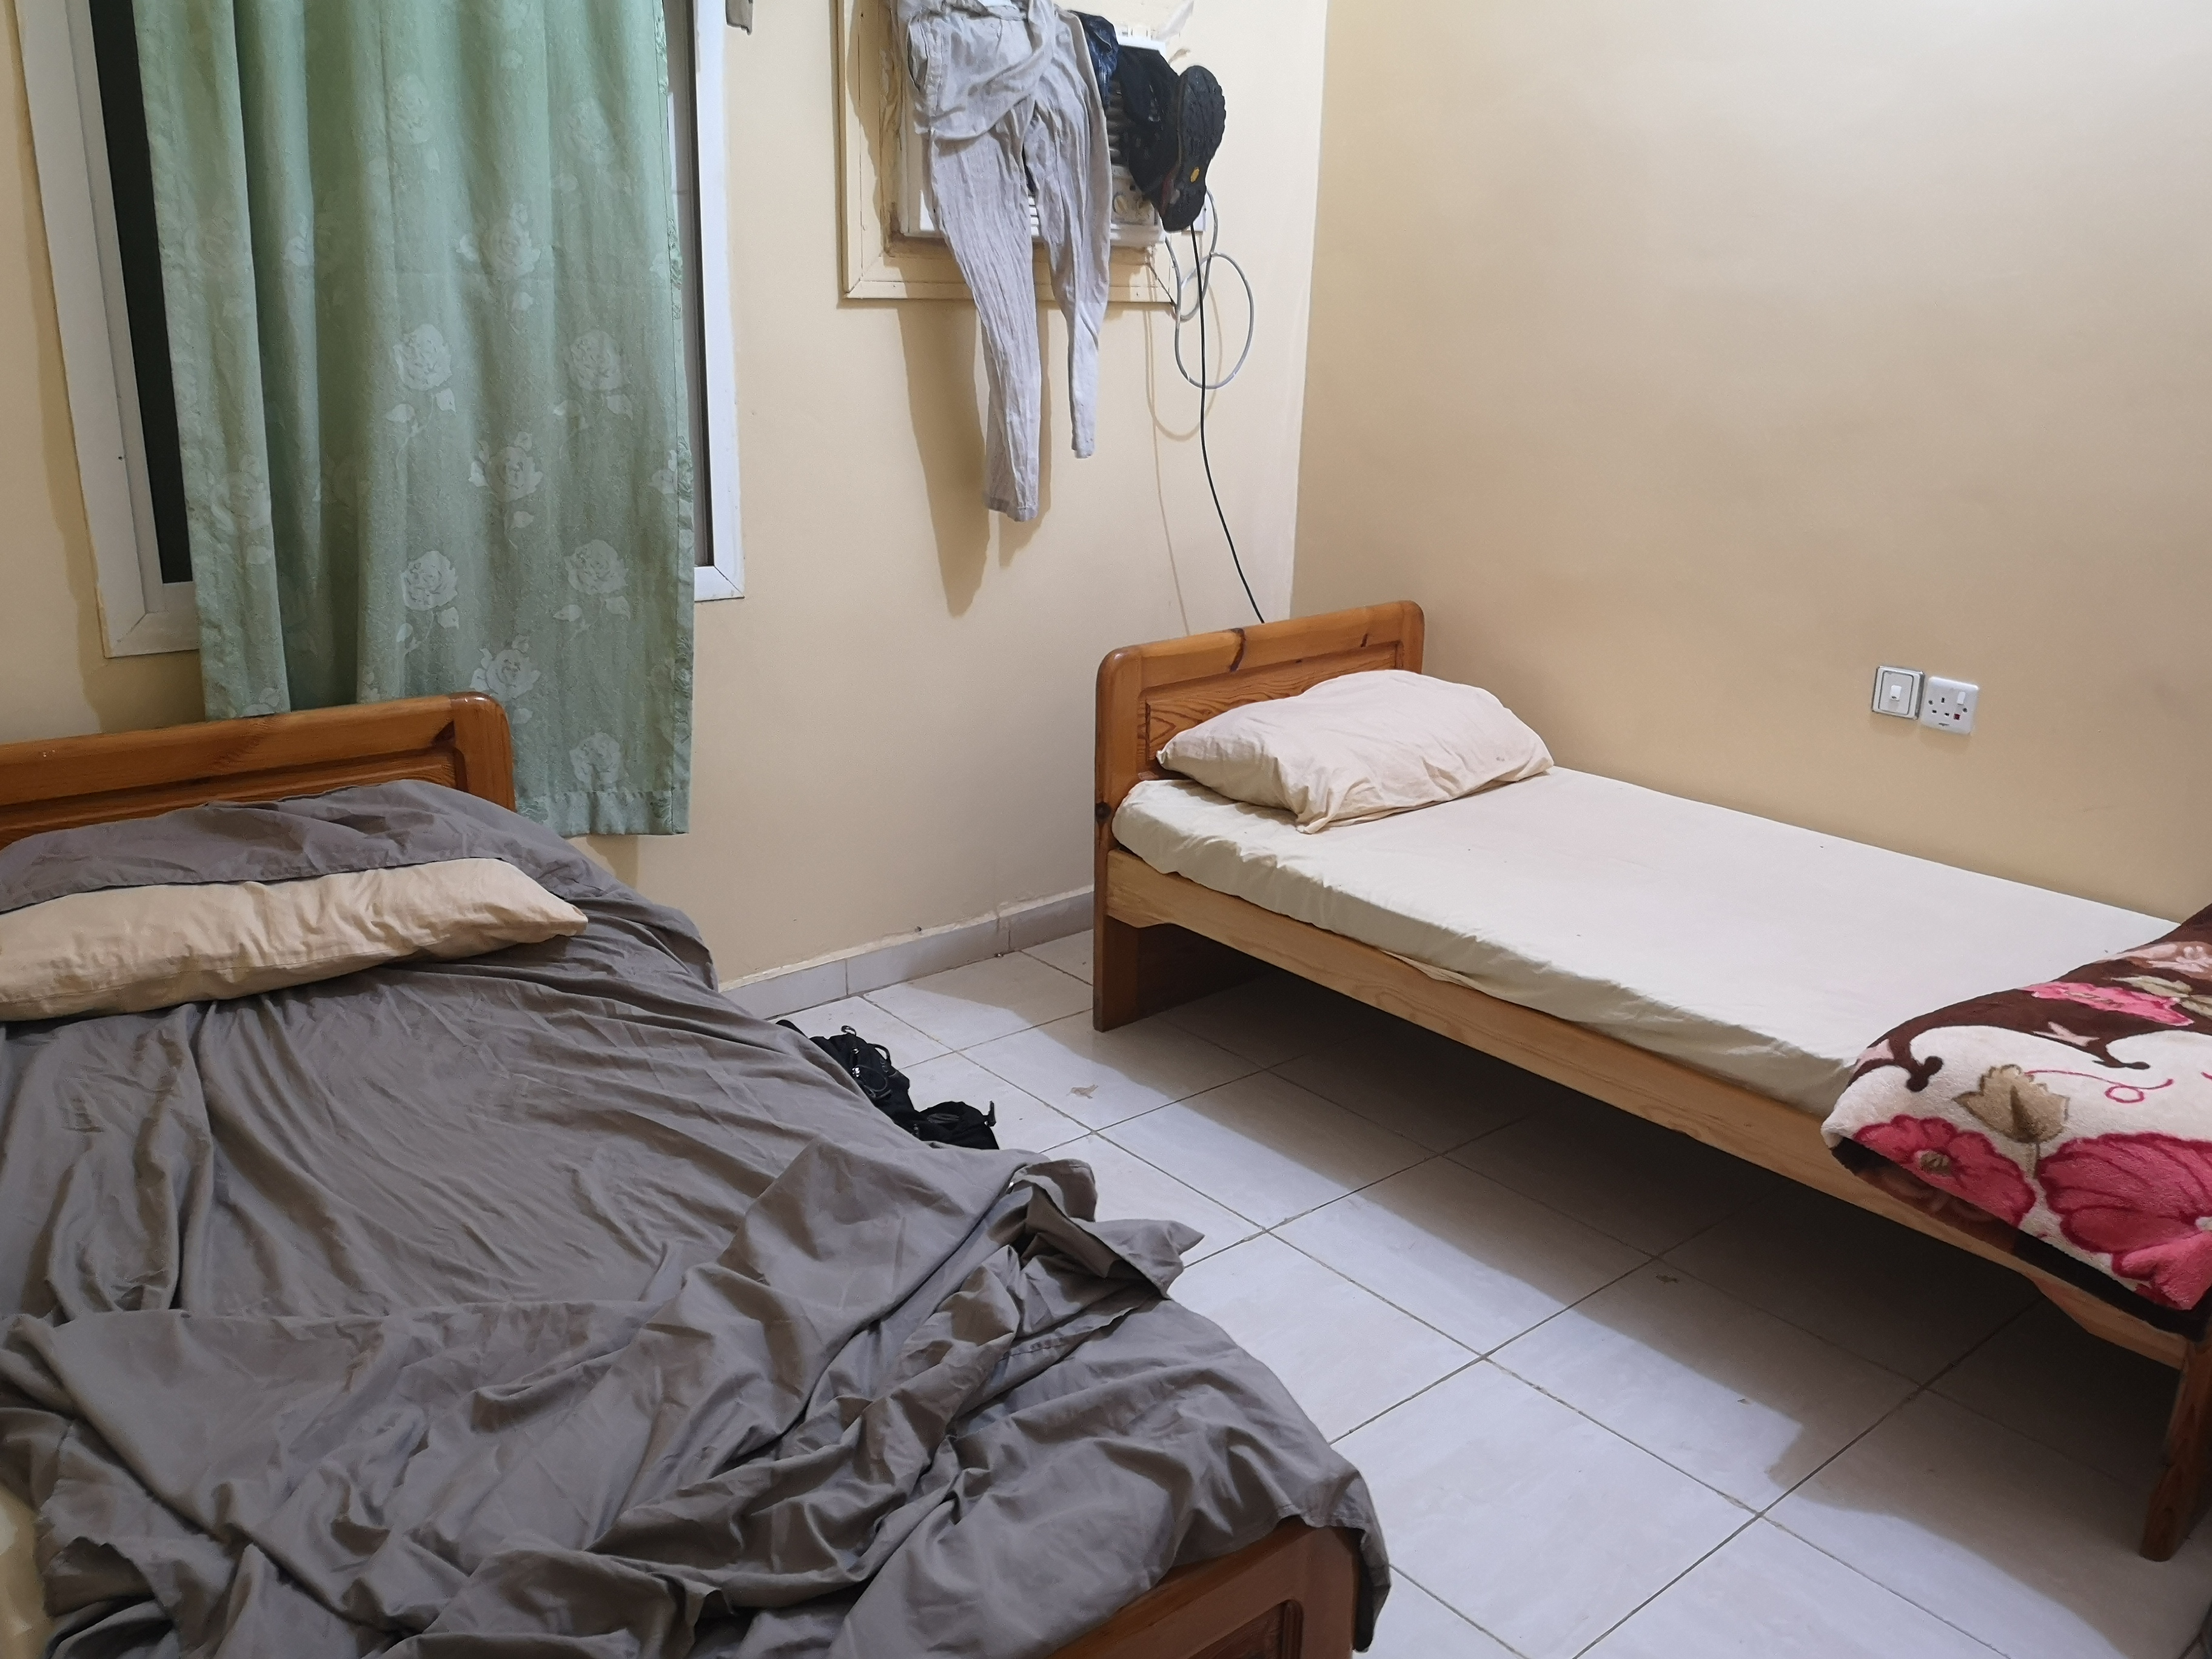 Rooms of the Socotra Hotel